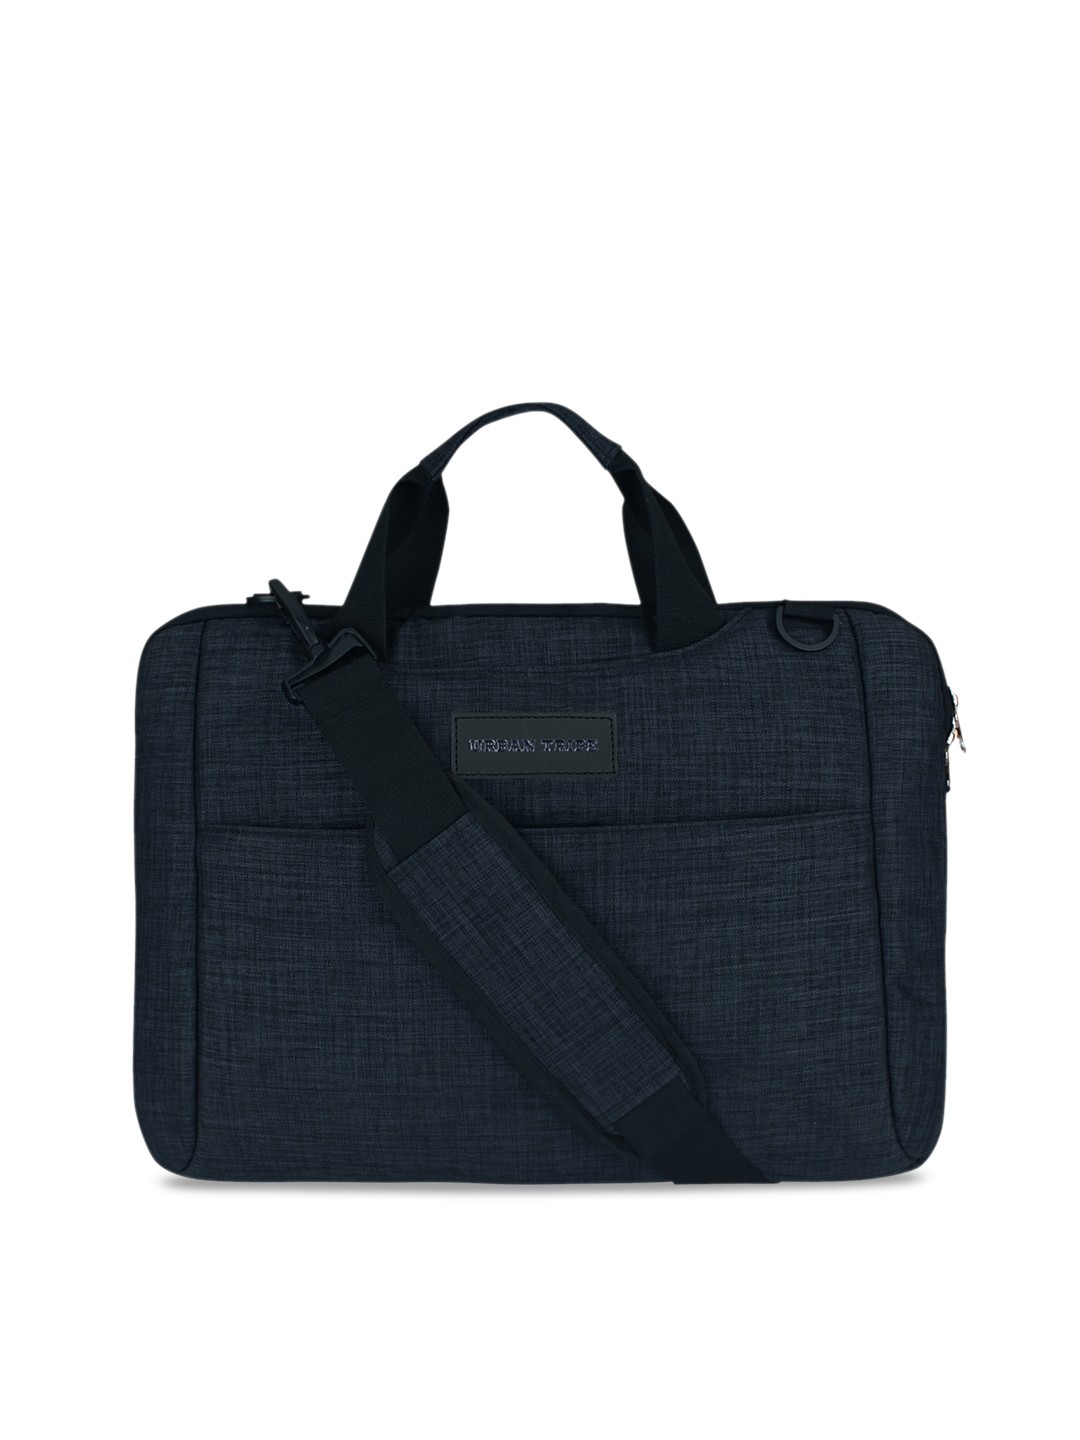 URBAN TRIBE Unisex Blue Solid Laptop Bag